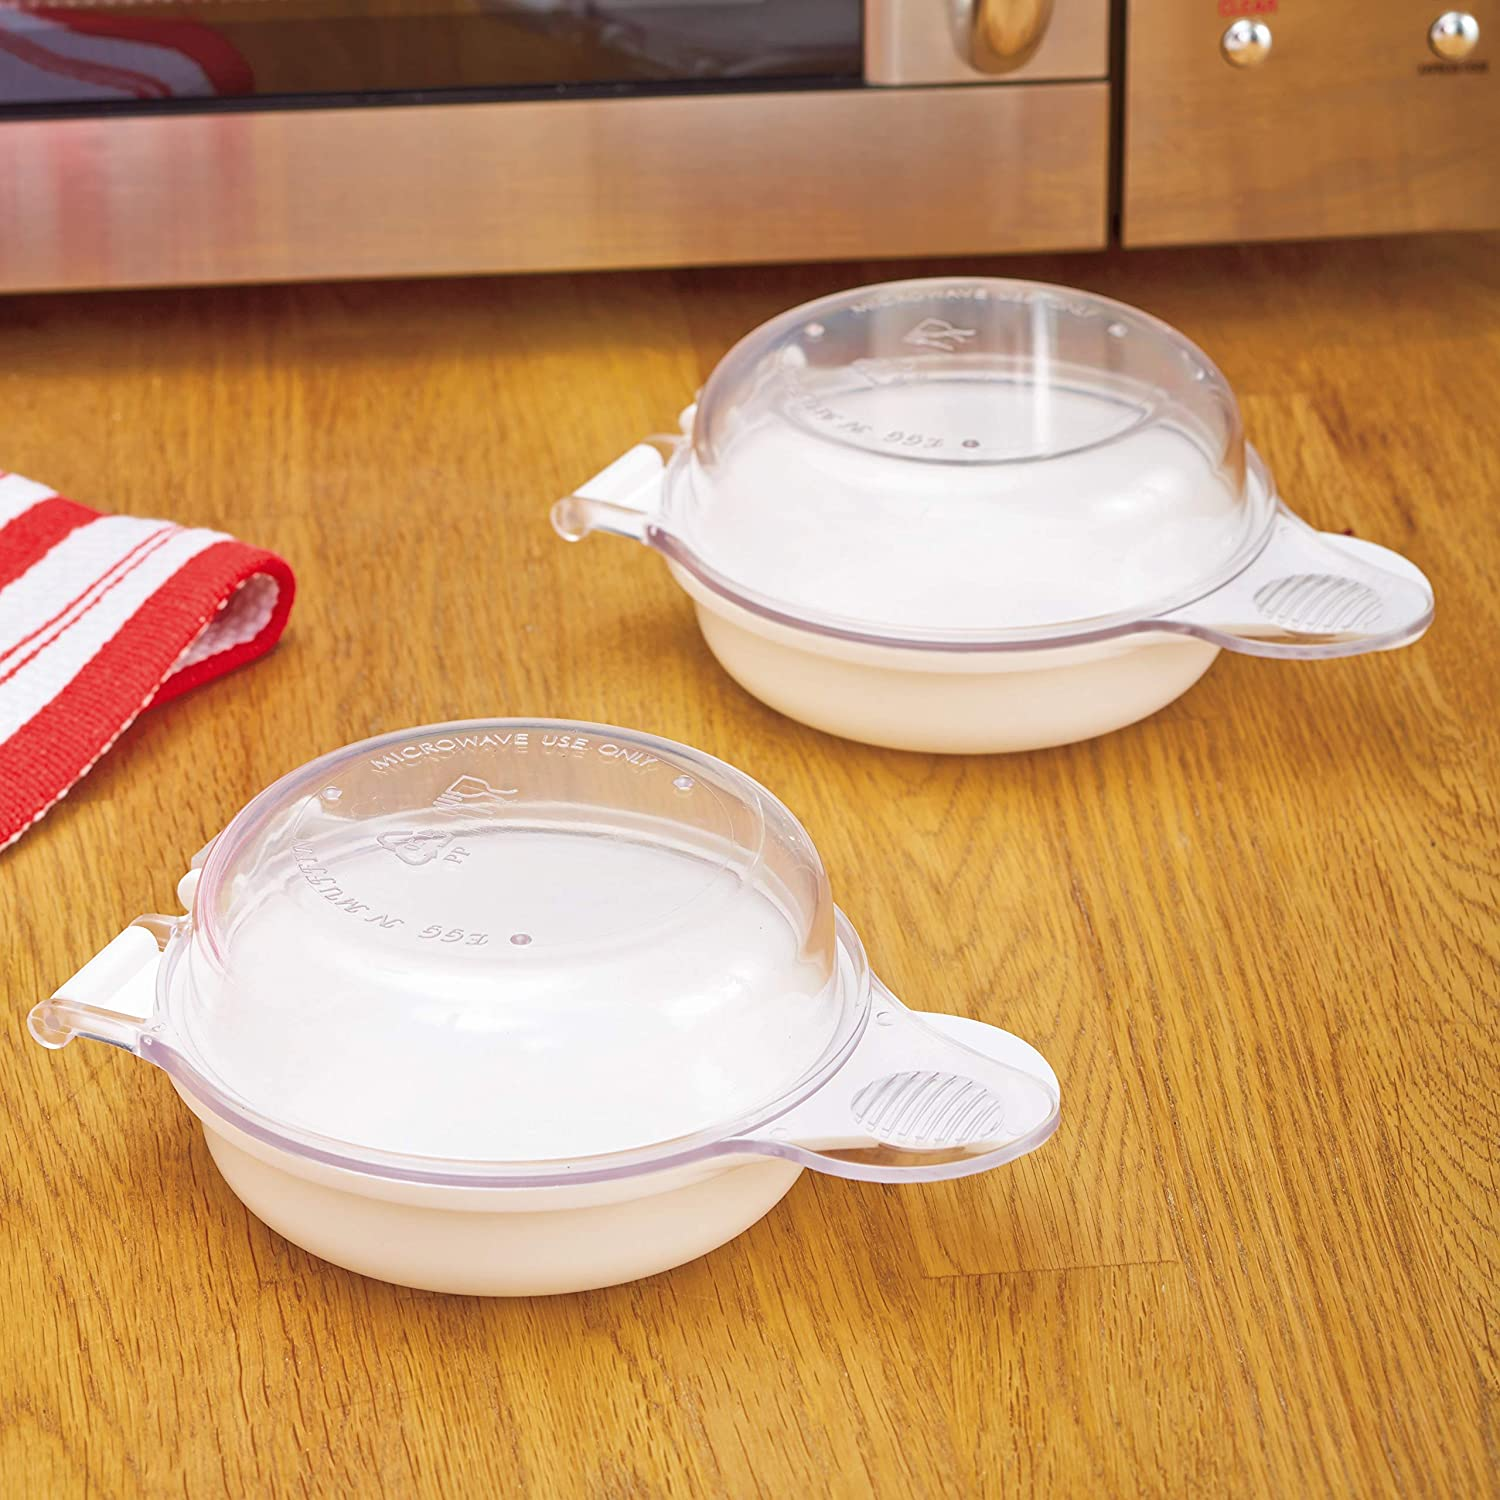 Microwave Egg Cooker - For Egg Muffin Sandwiches – Set of 2